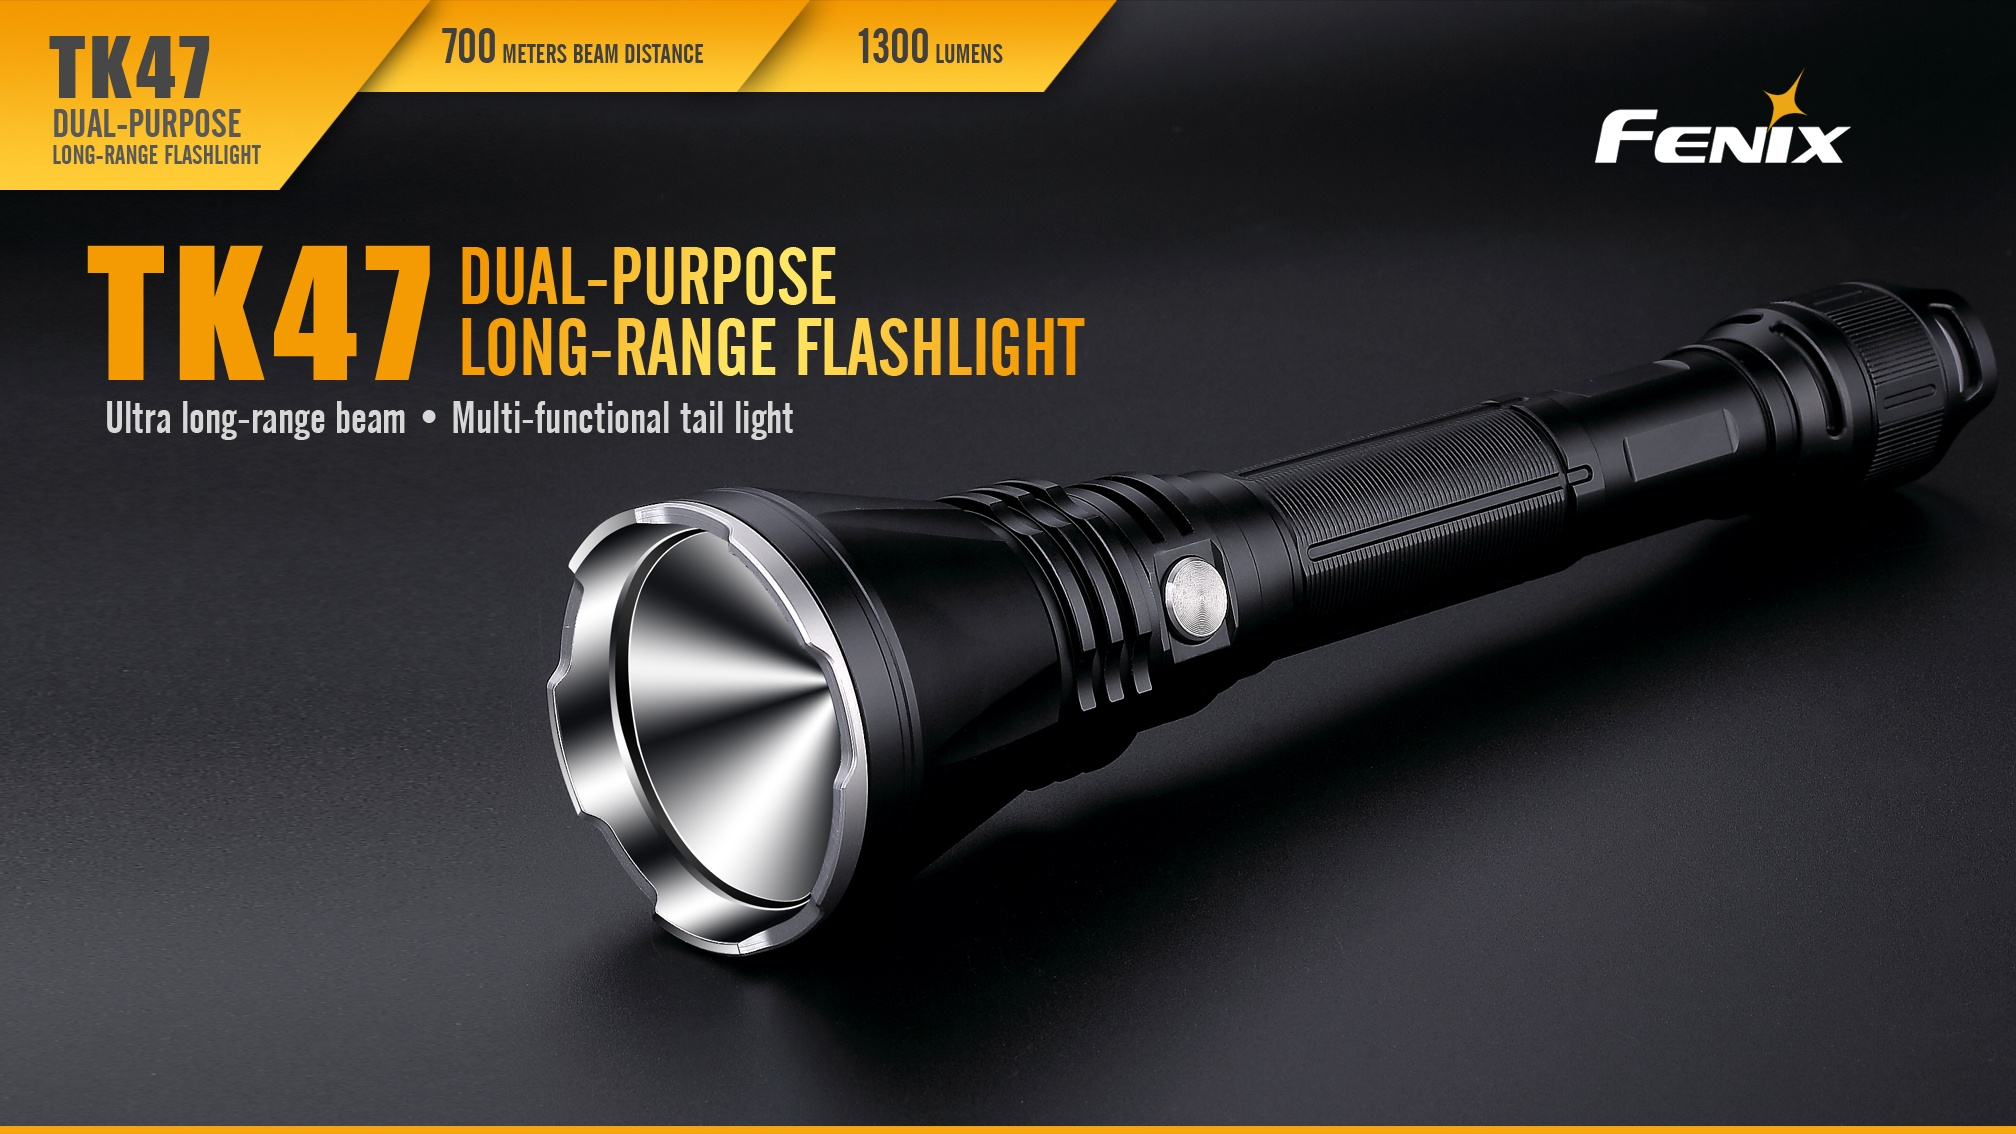 Fenix TK47 Dual-Purpose LED Flashlight Overview